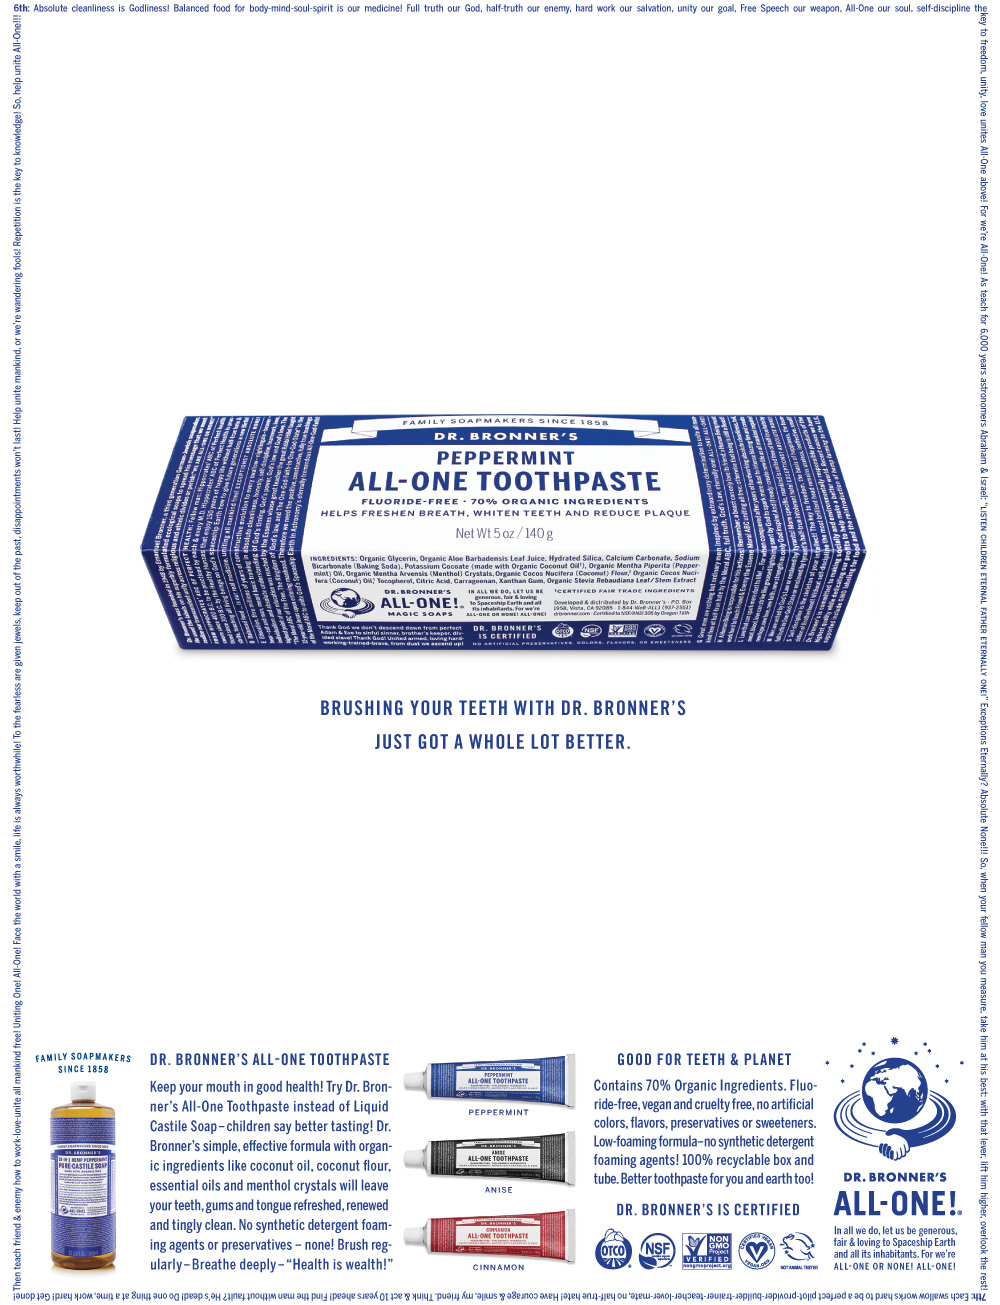 New Logo and Packaging for Dr. Bronner's